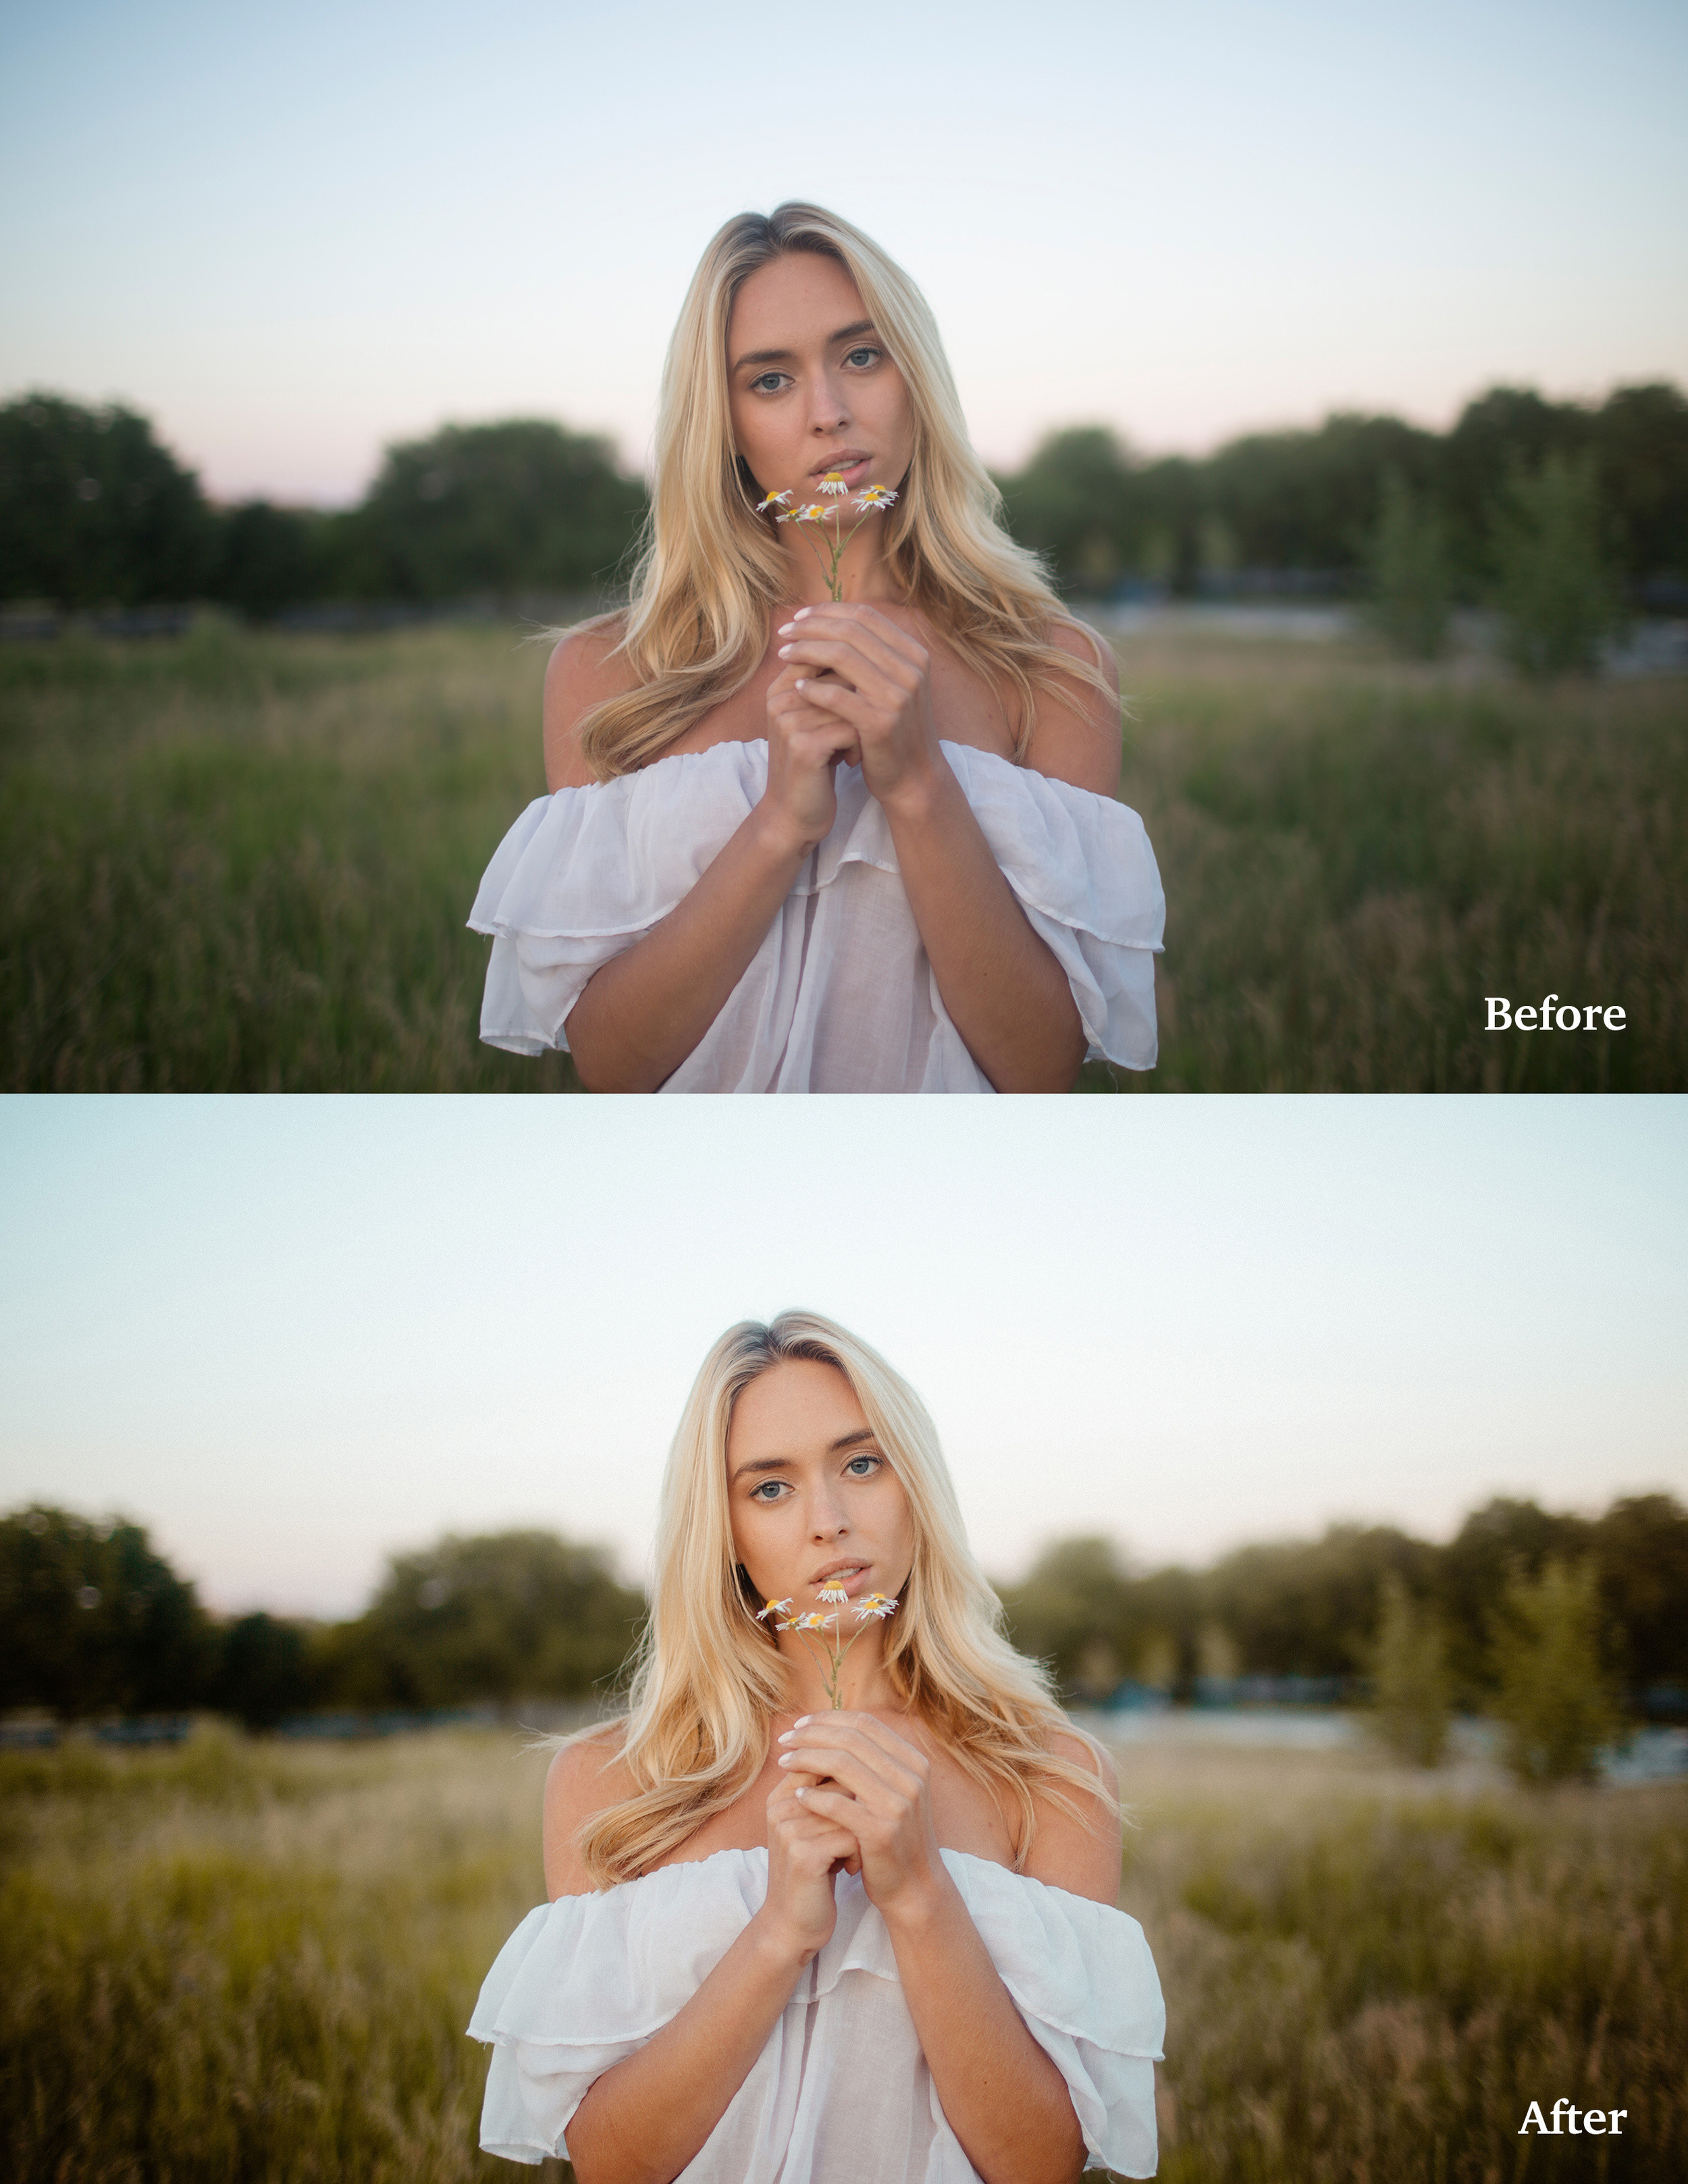 The Best Lightroom Presets for Photographers